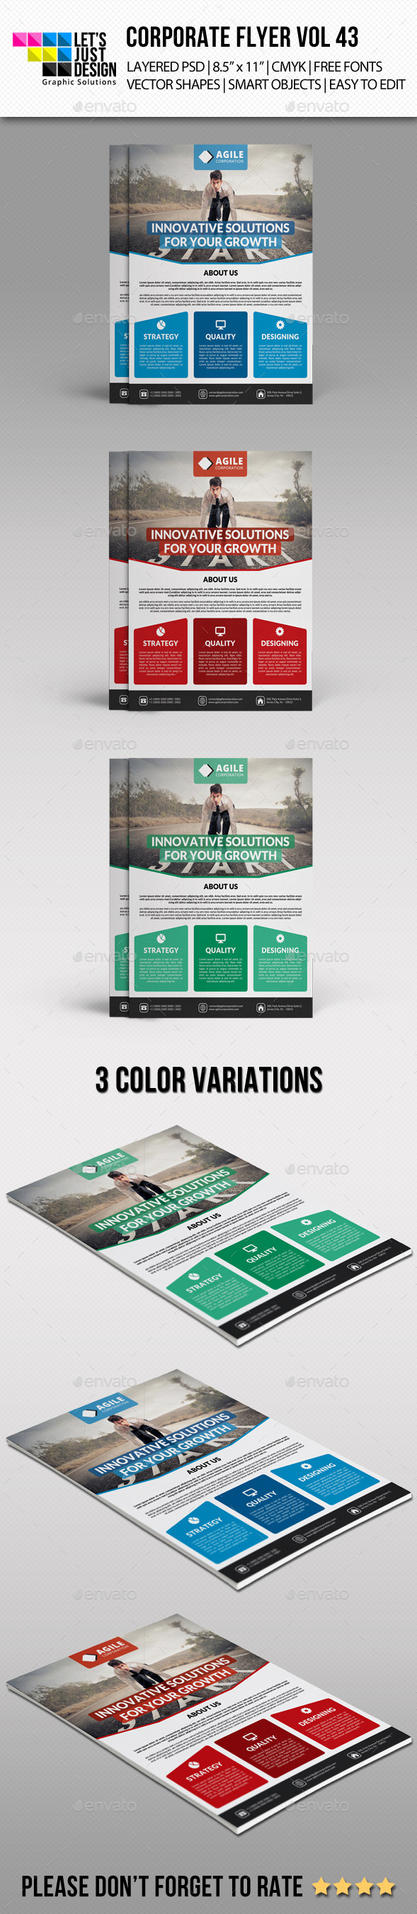 Corporate Flyer Template Vol 43 by jasonmendes